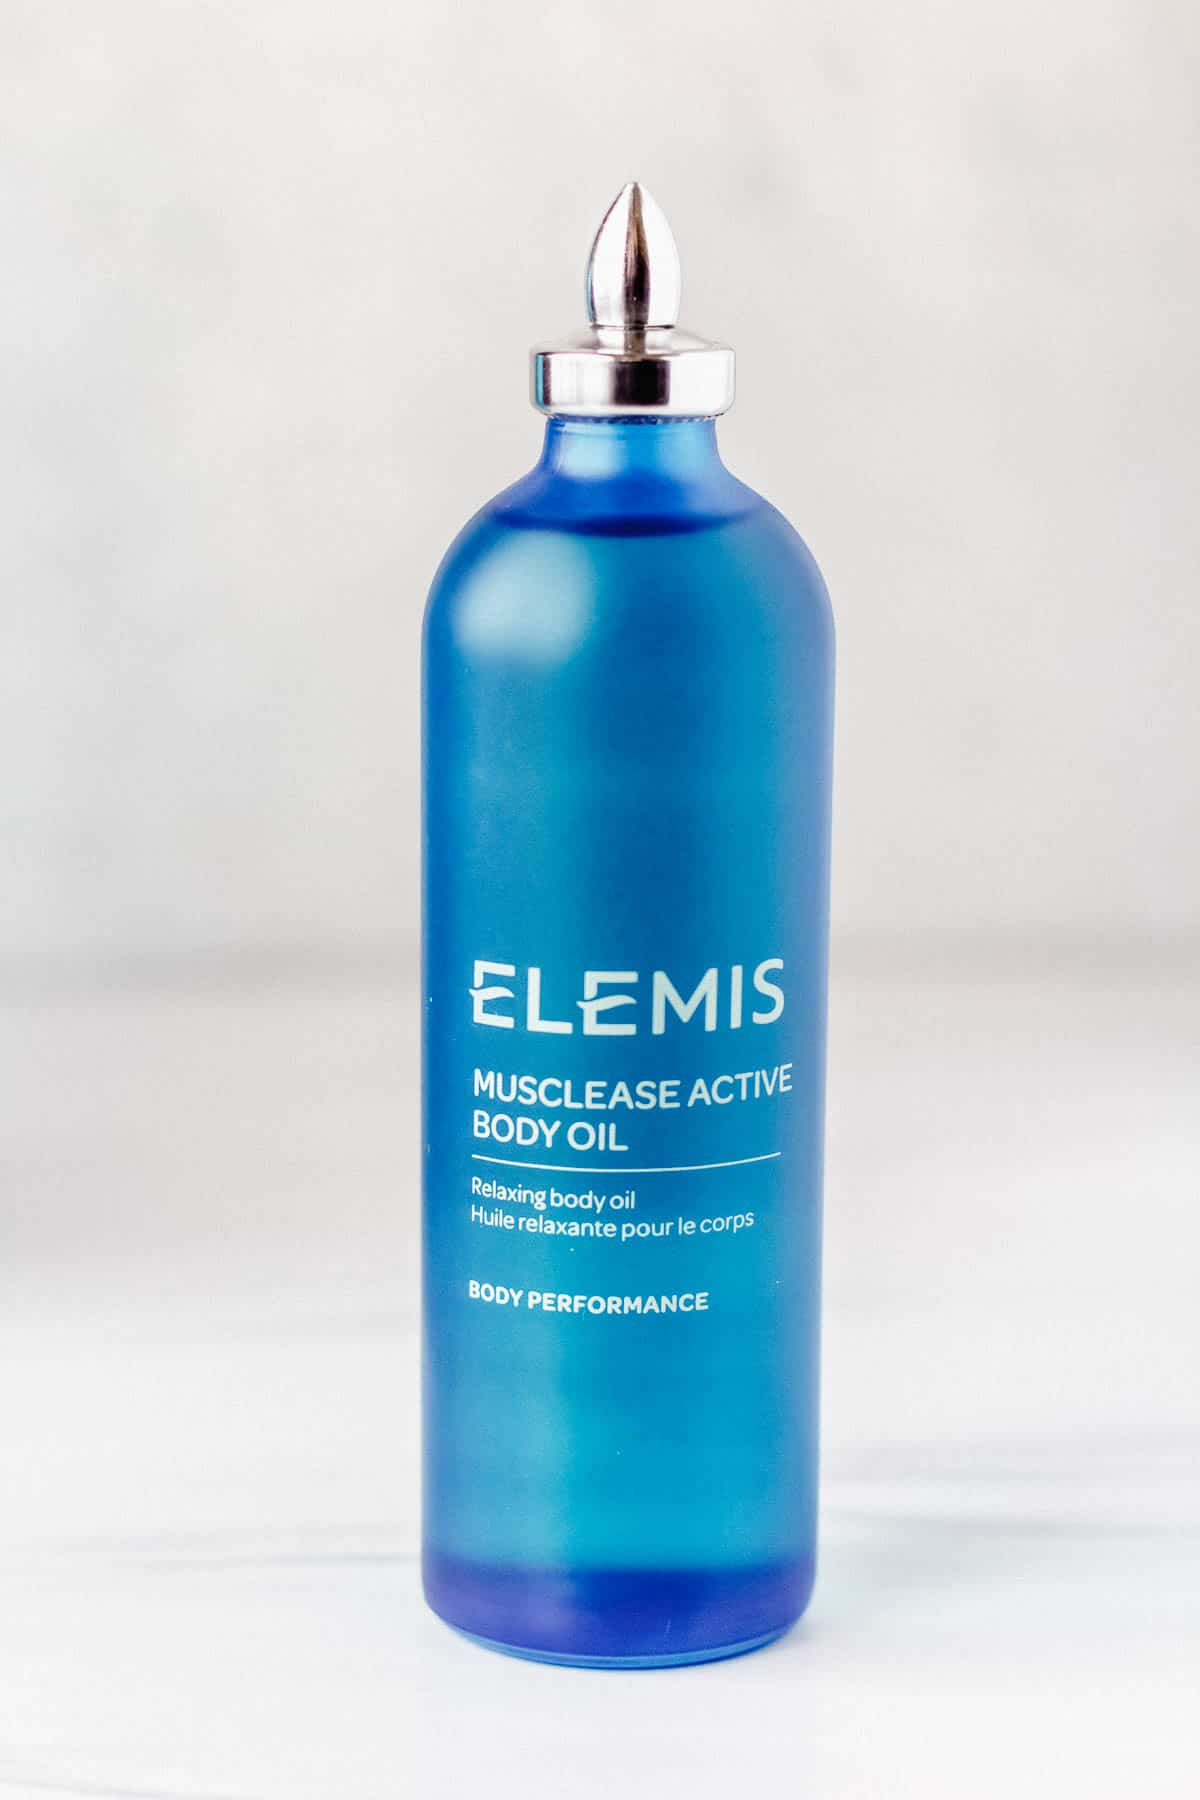 Elemis Muclease Active Body Oil bottle on a gray background